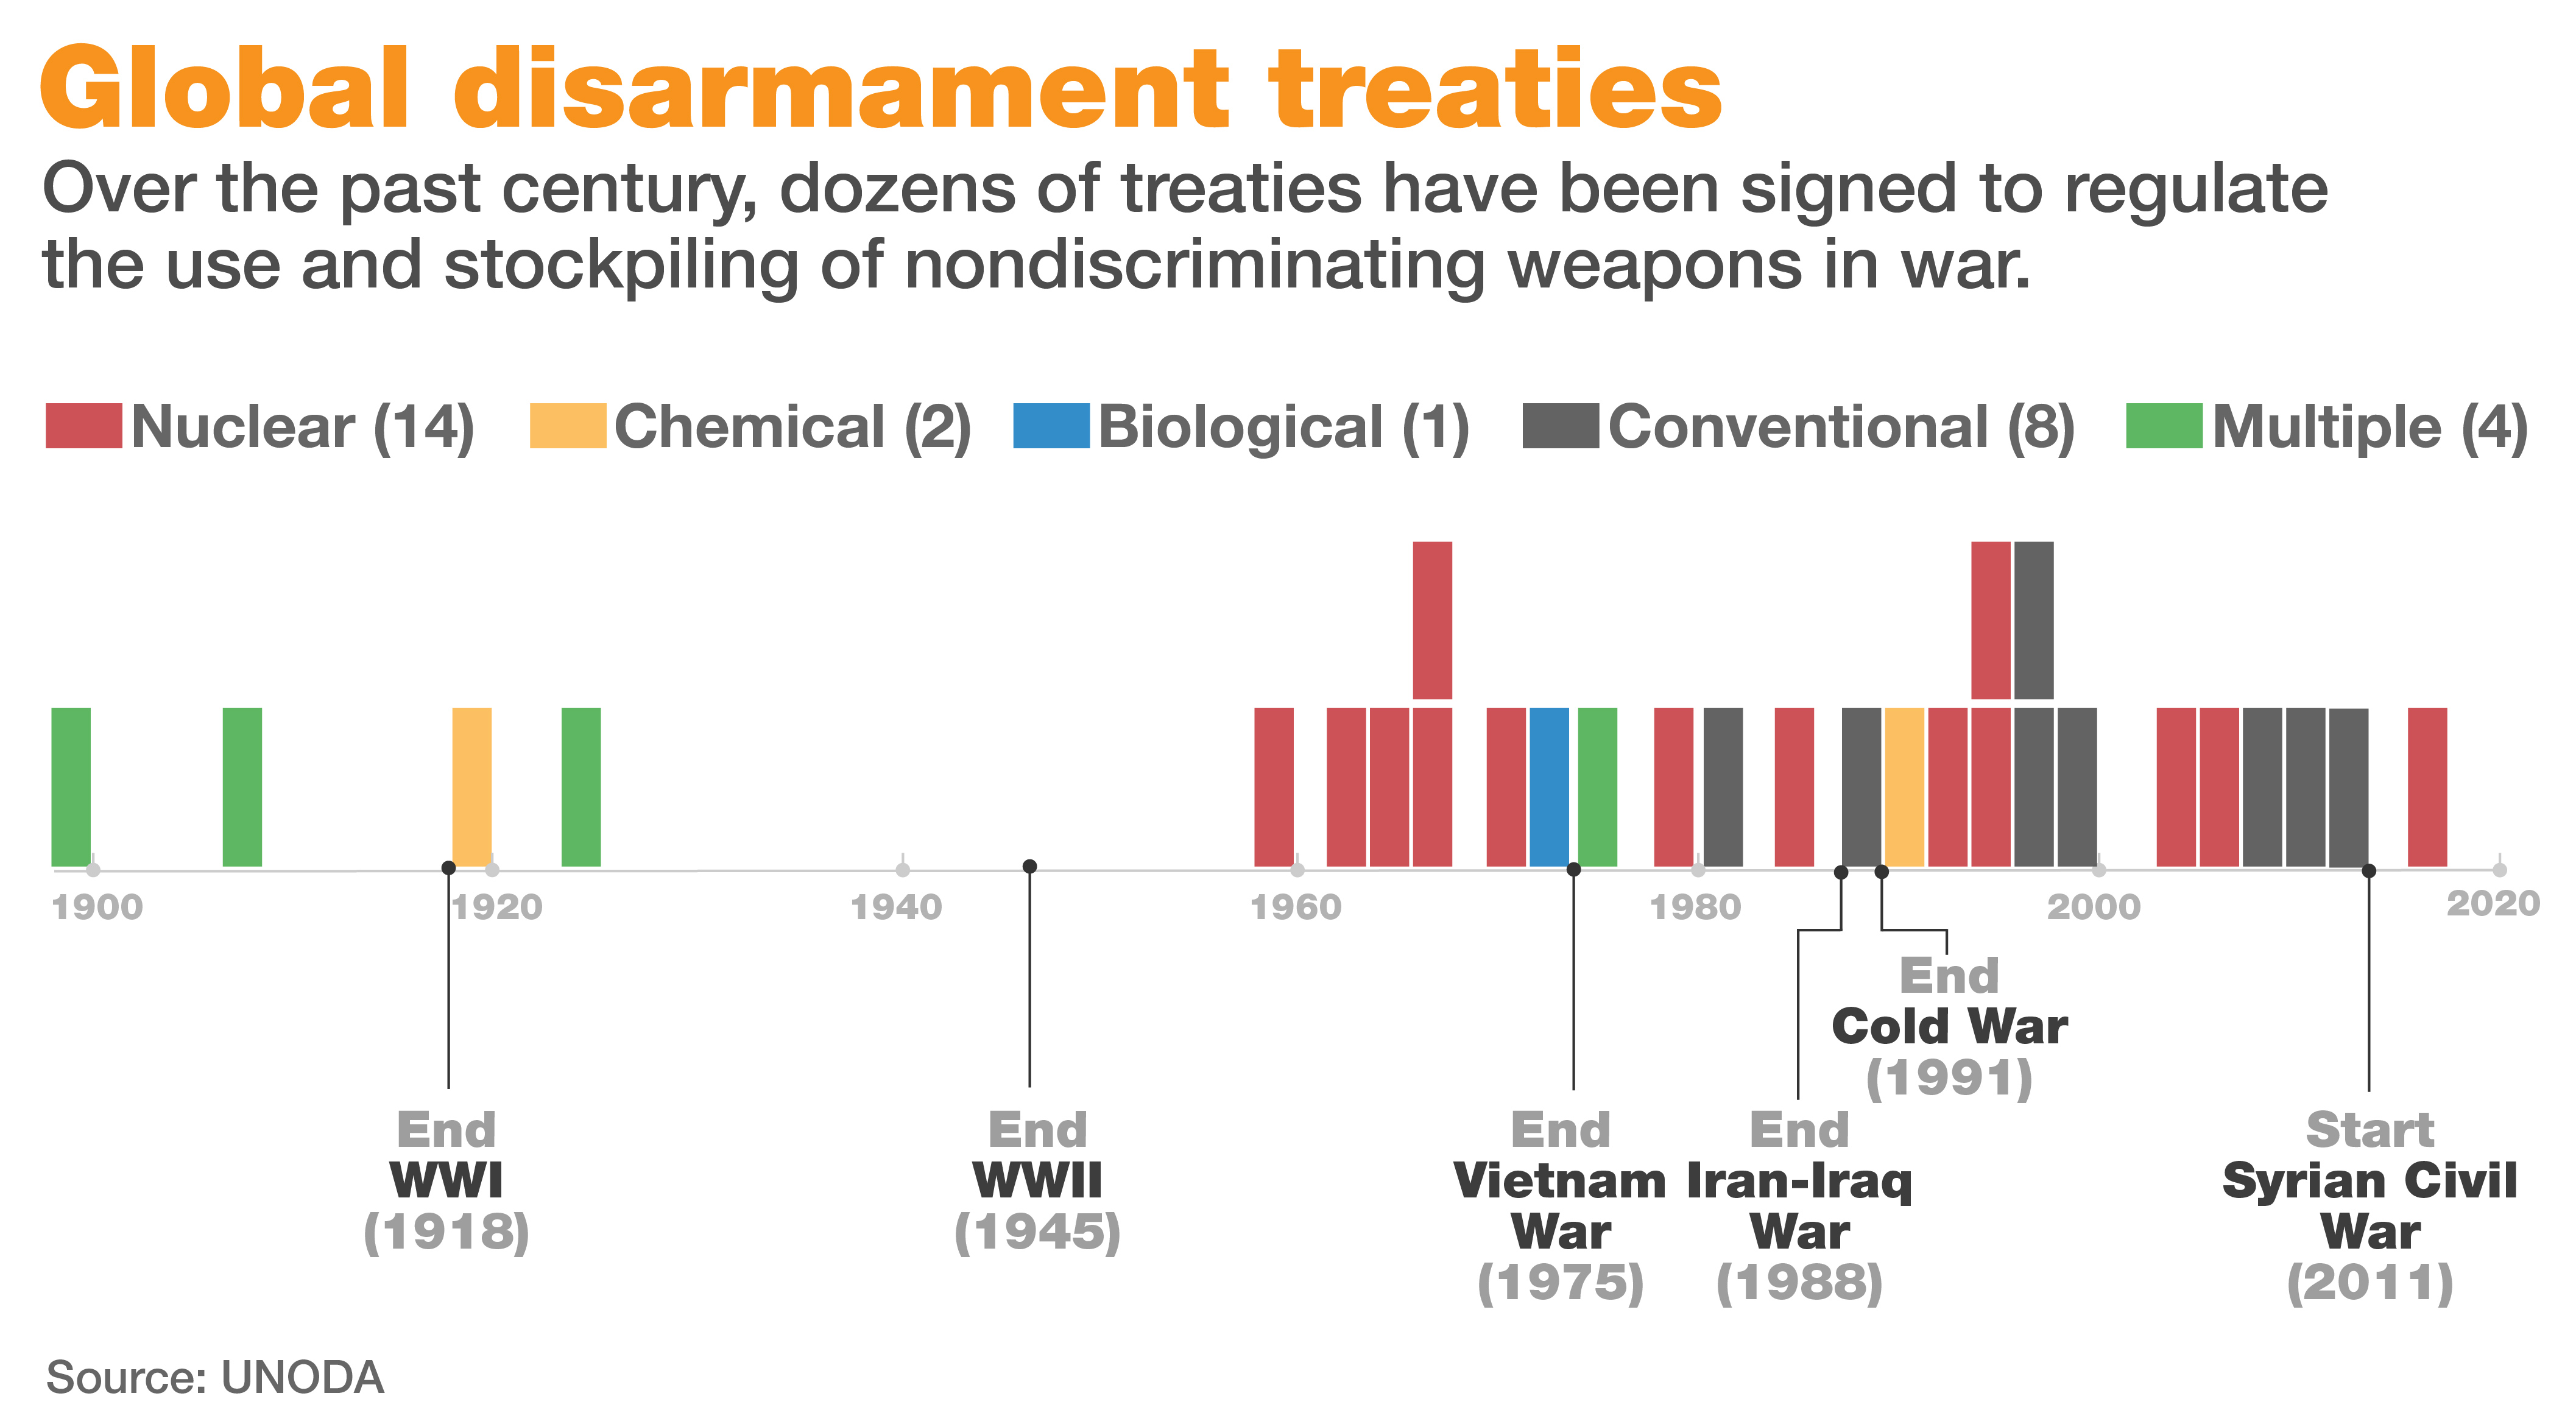 Global disarmament treaties